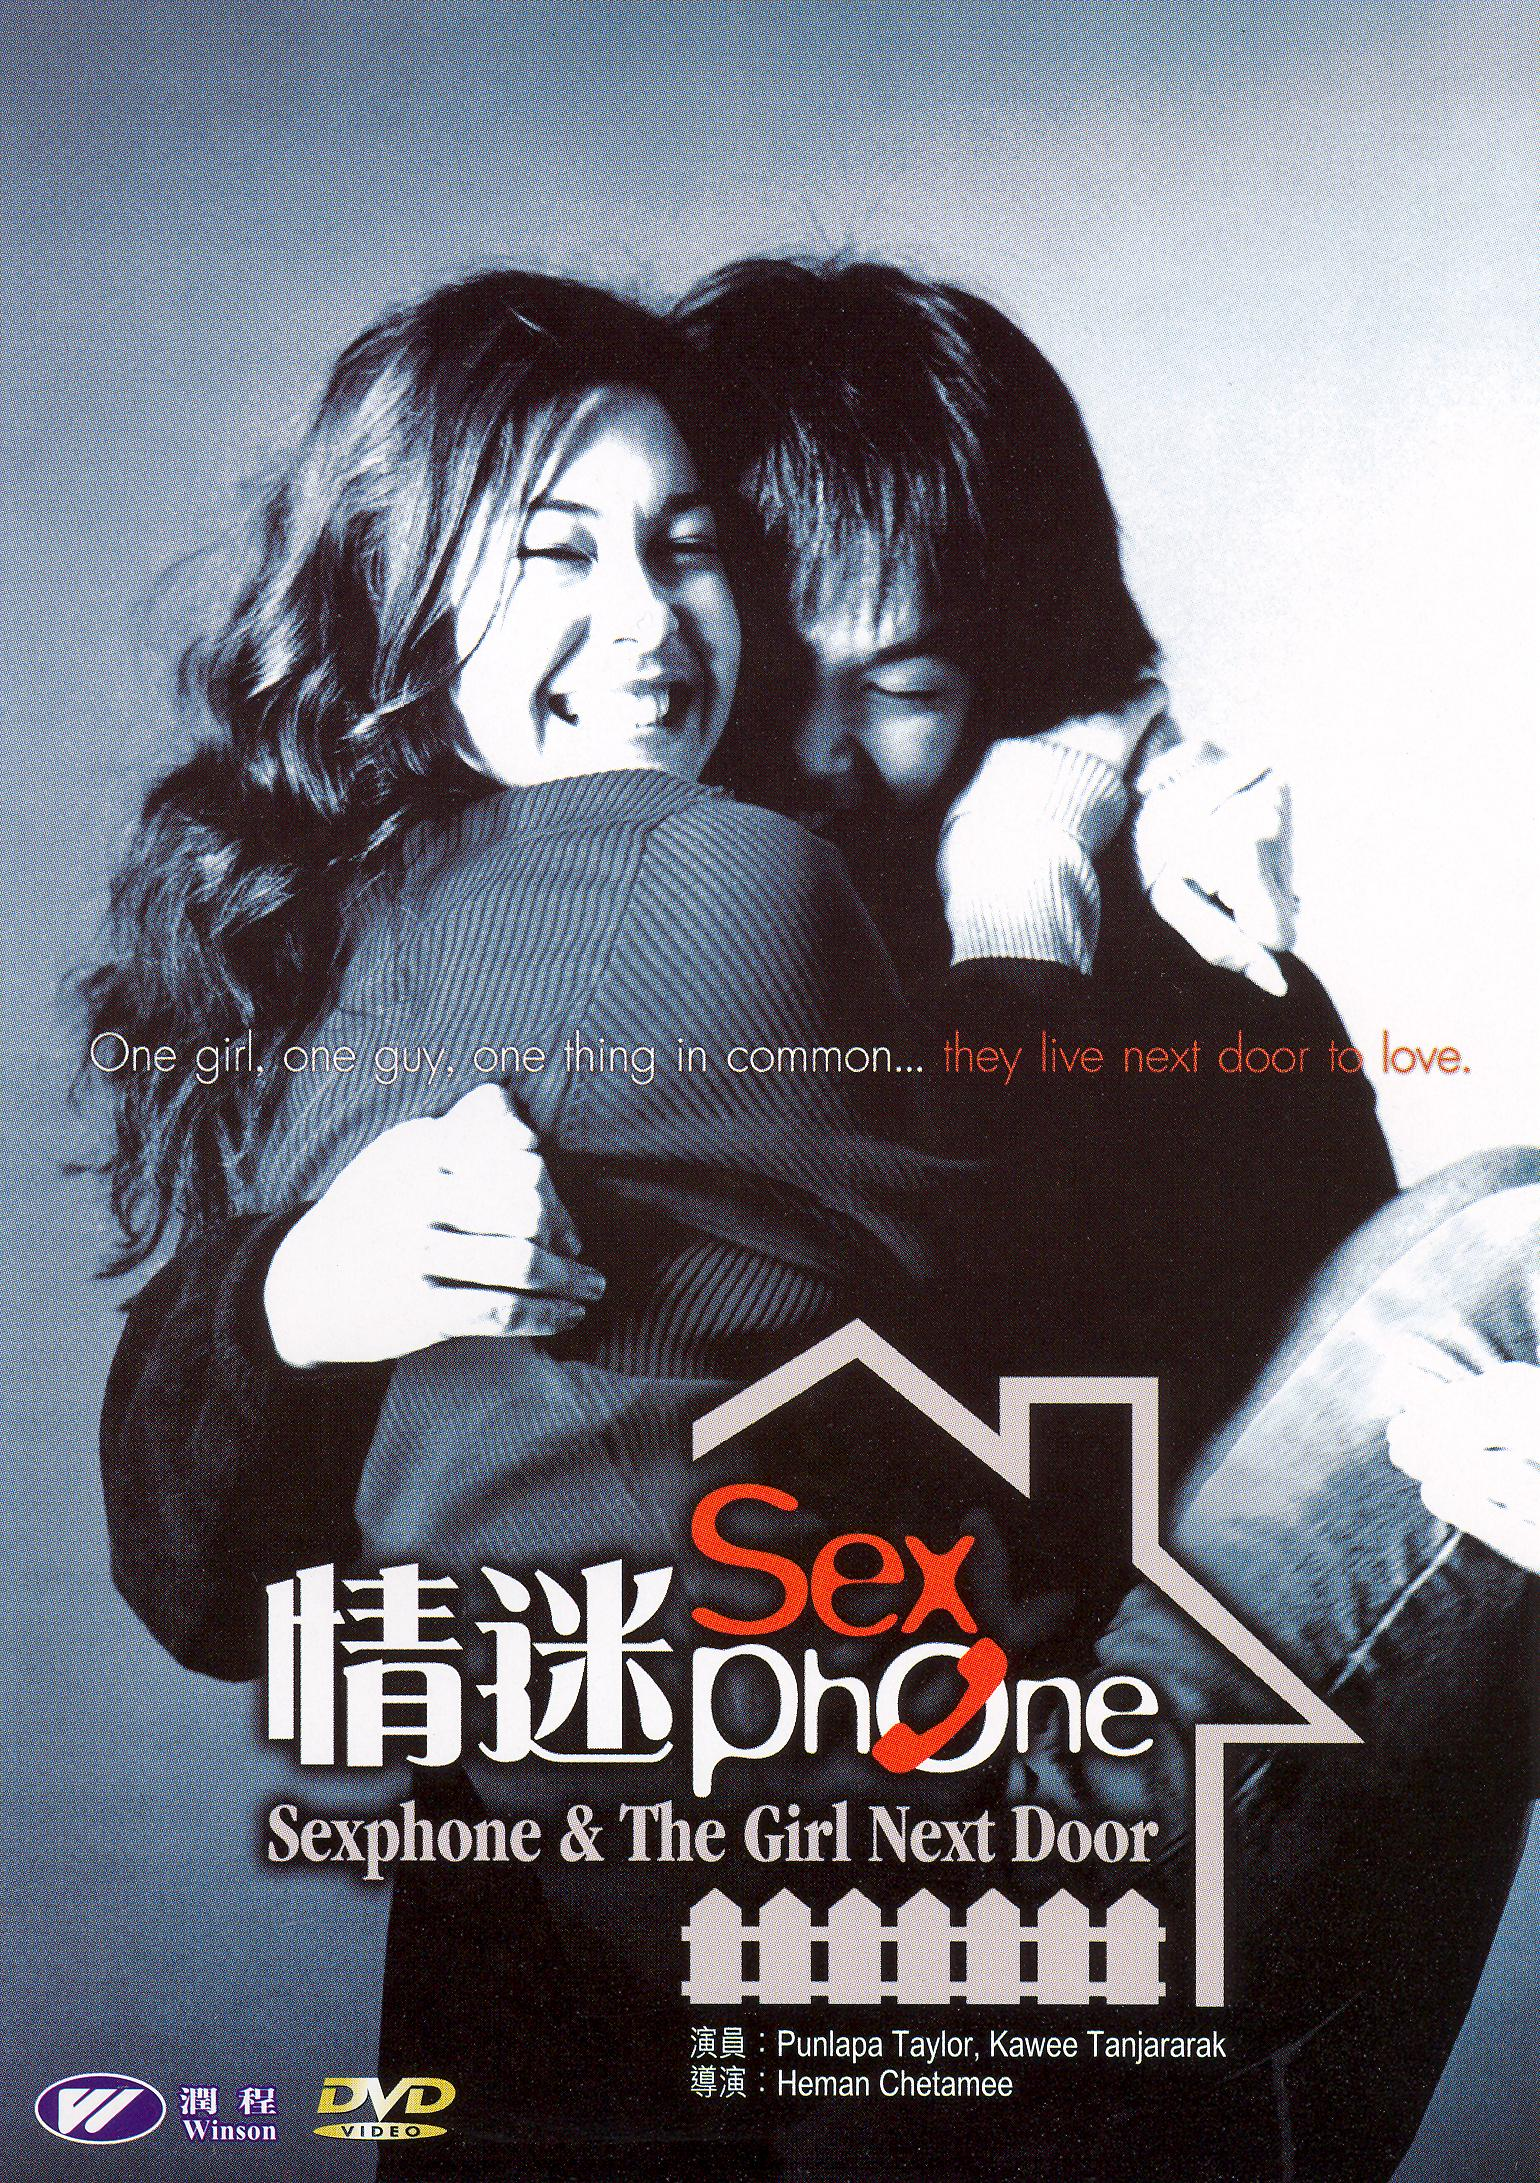 Sexphone and the Girl Next Door